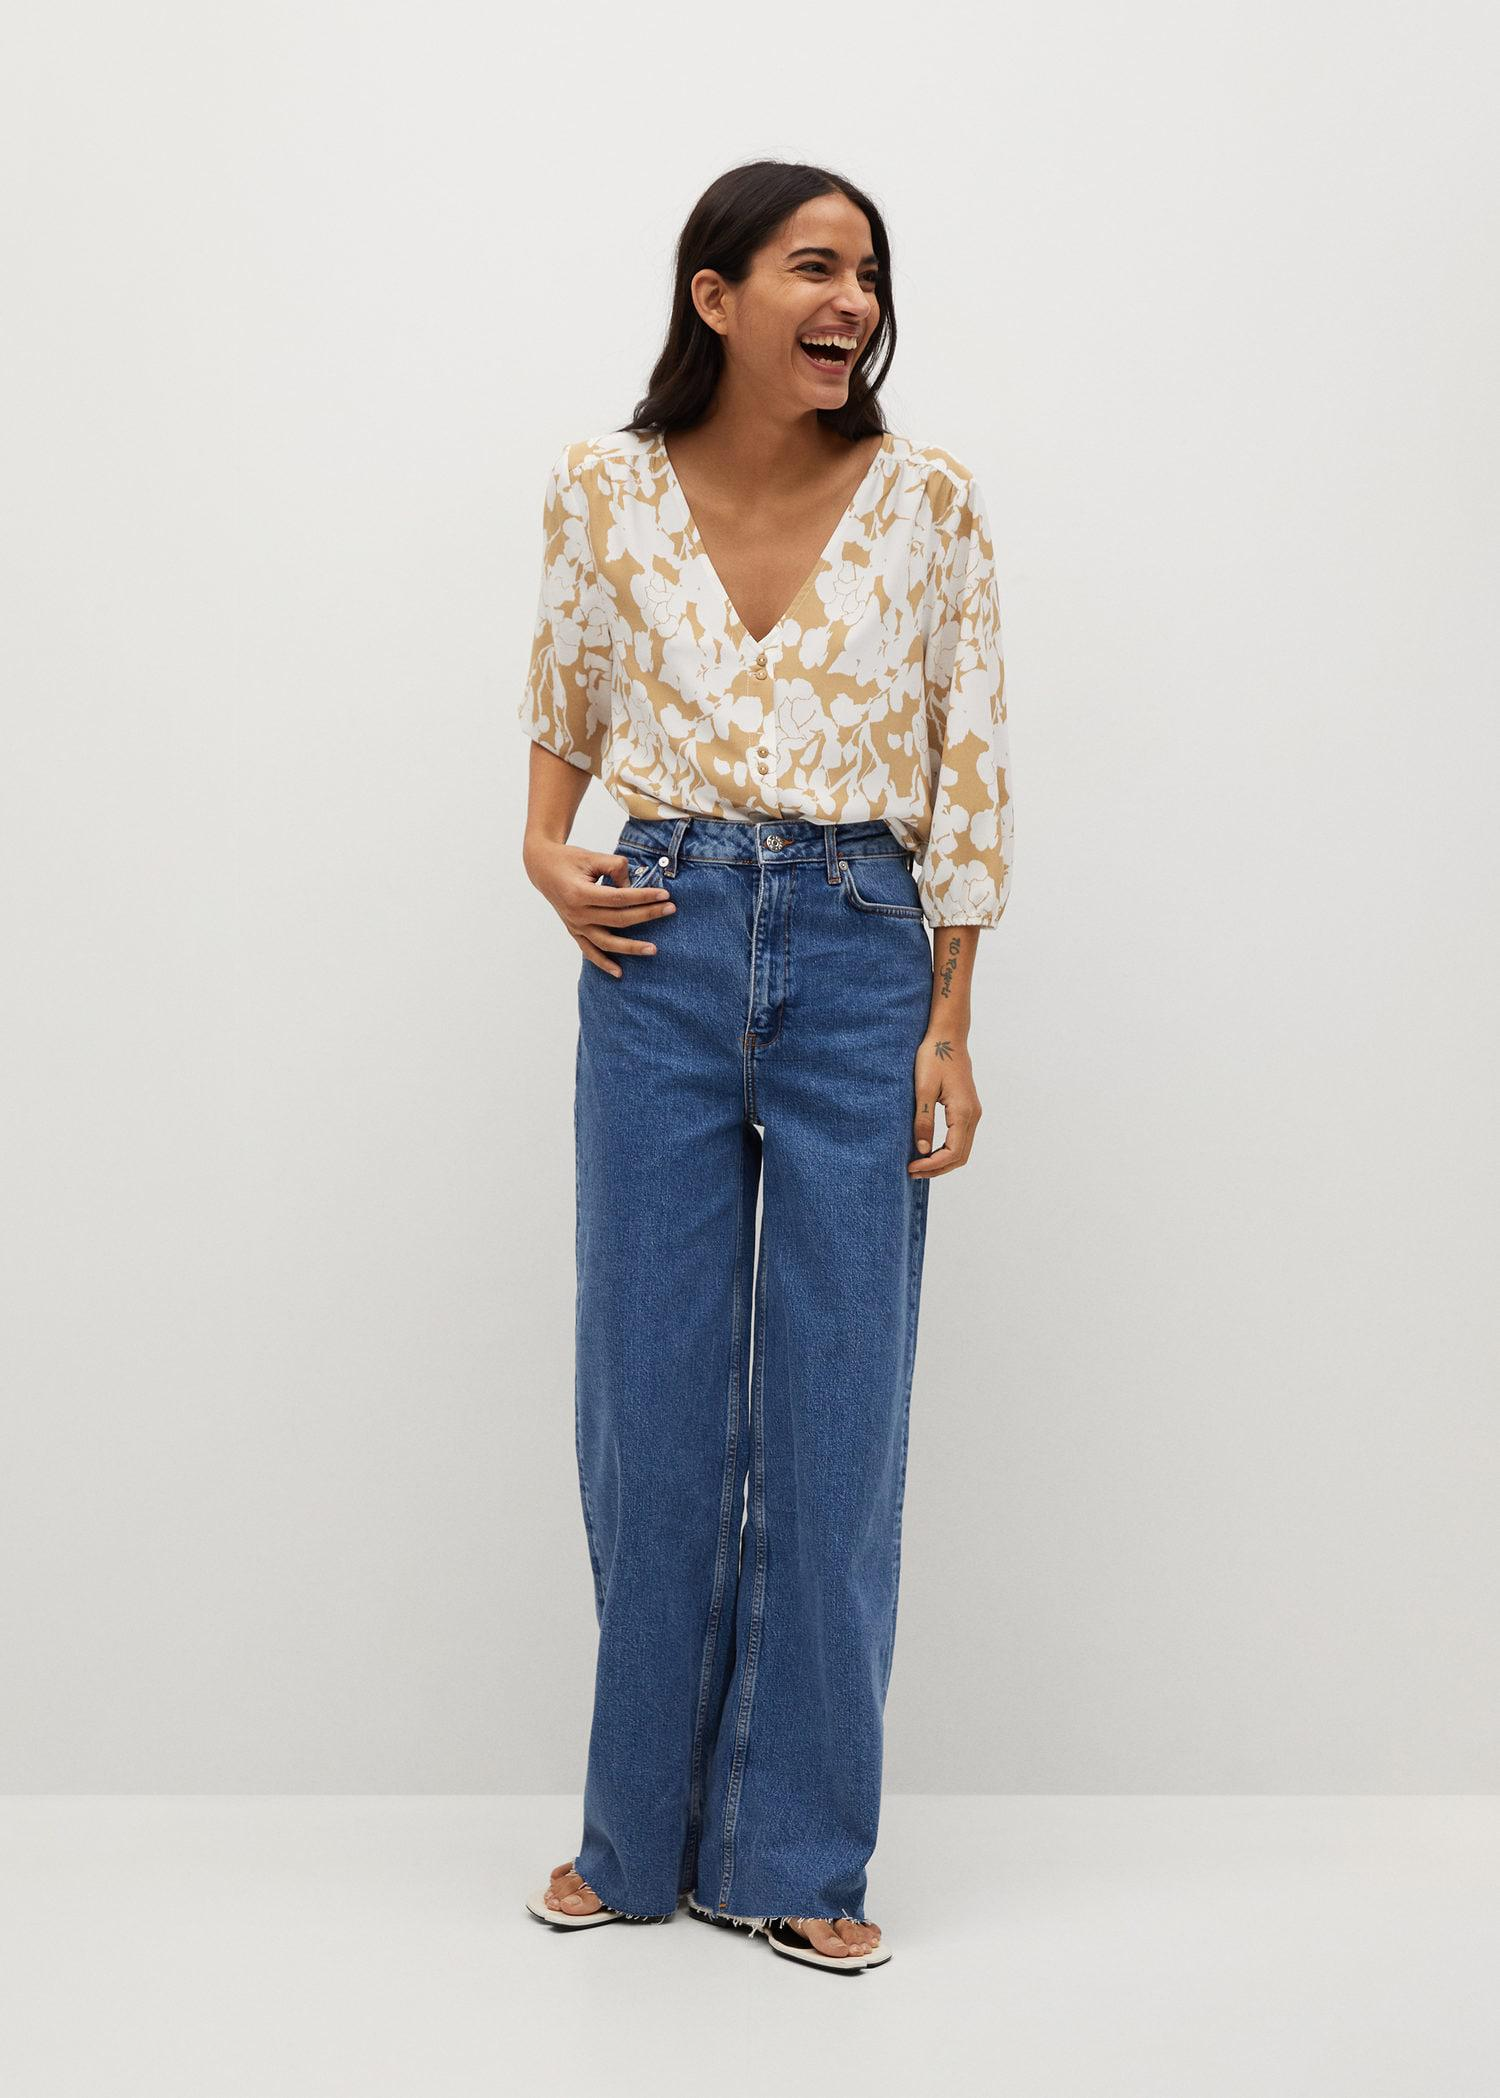 Buttoned flowy blouse 1